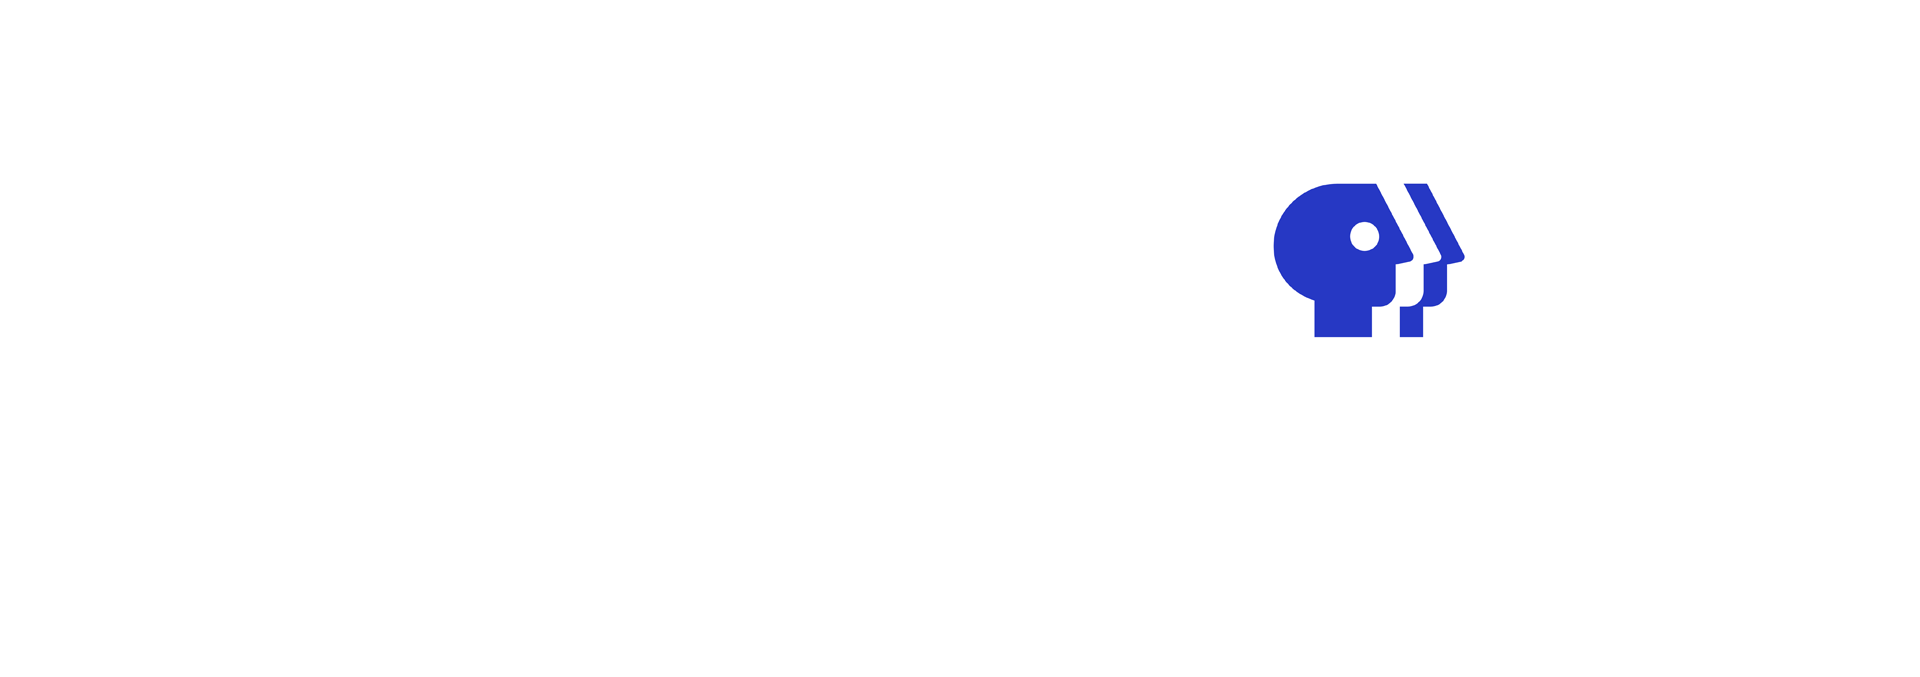 Milwaukee Pbs Channel Information